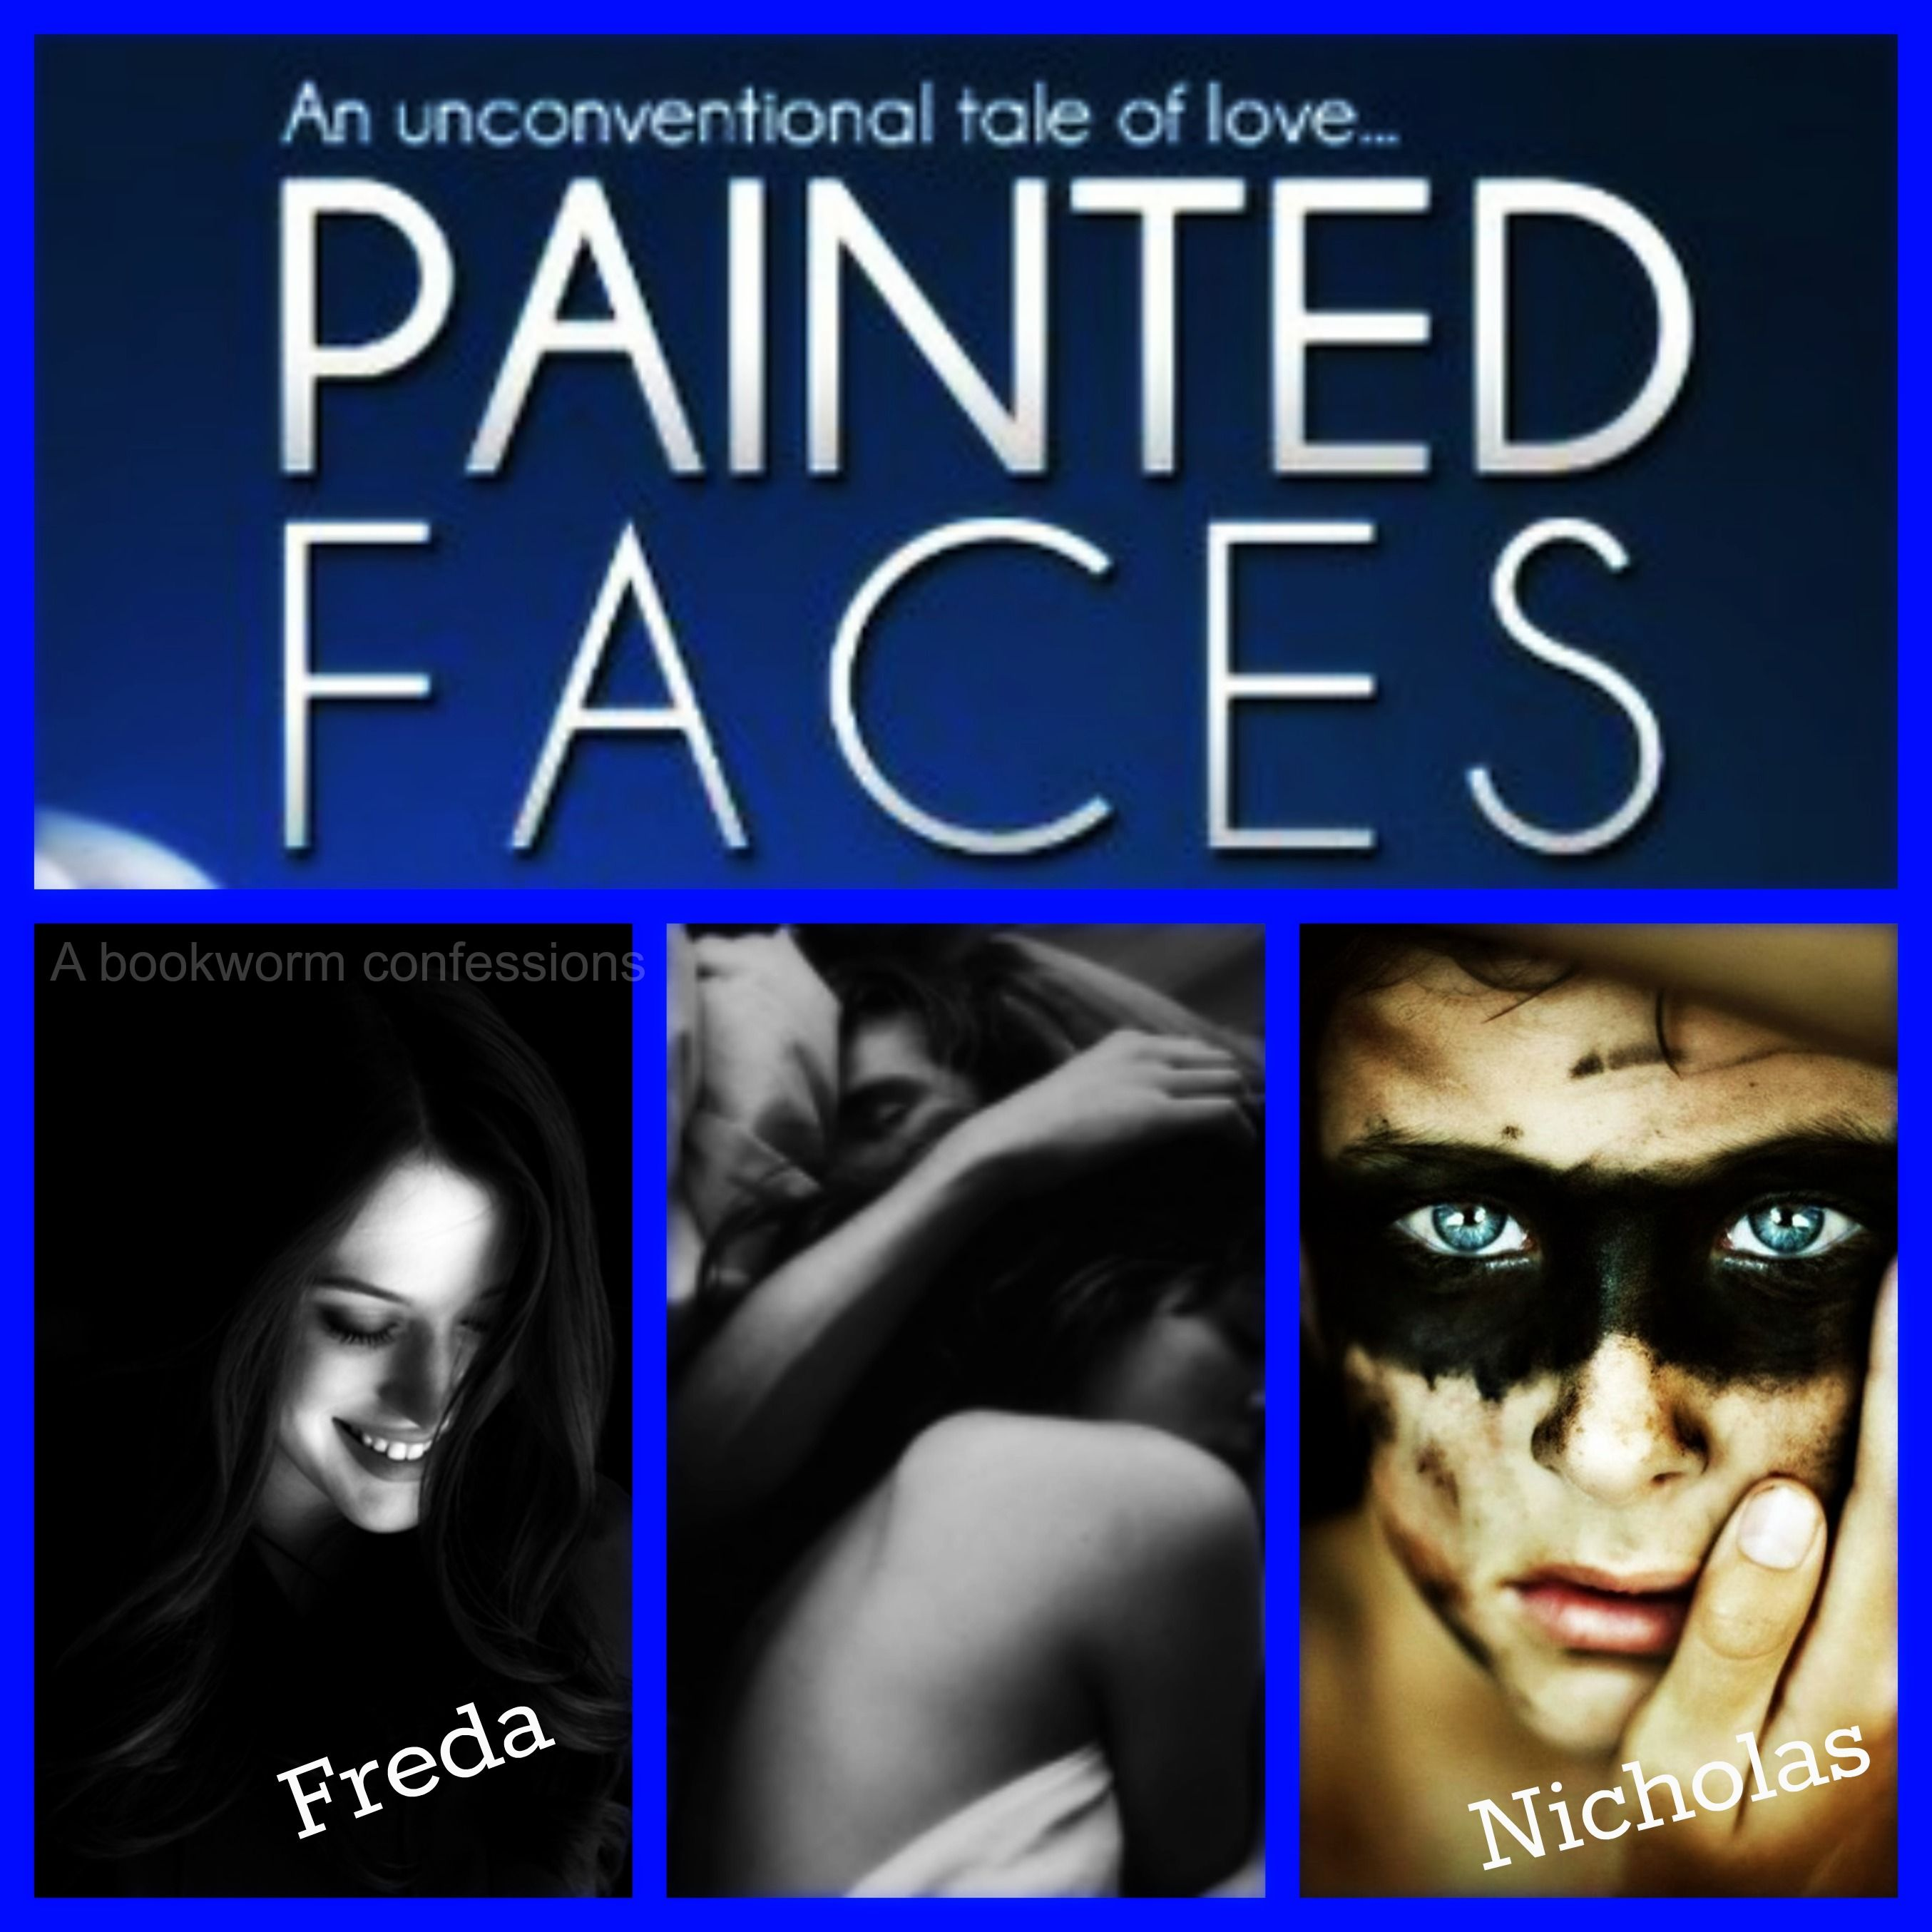 PAINTED FACES LH COSWAY DOWNLOAD